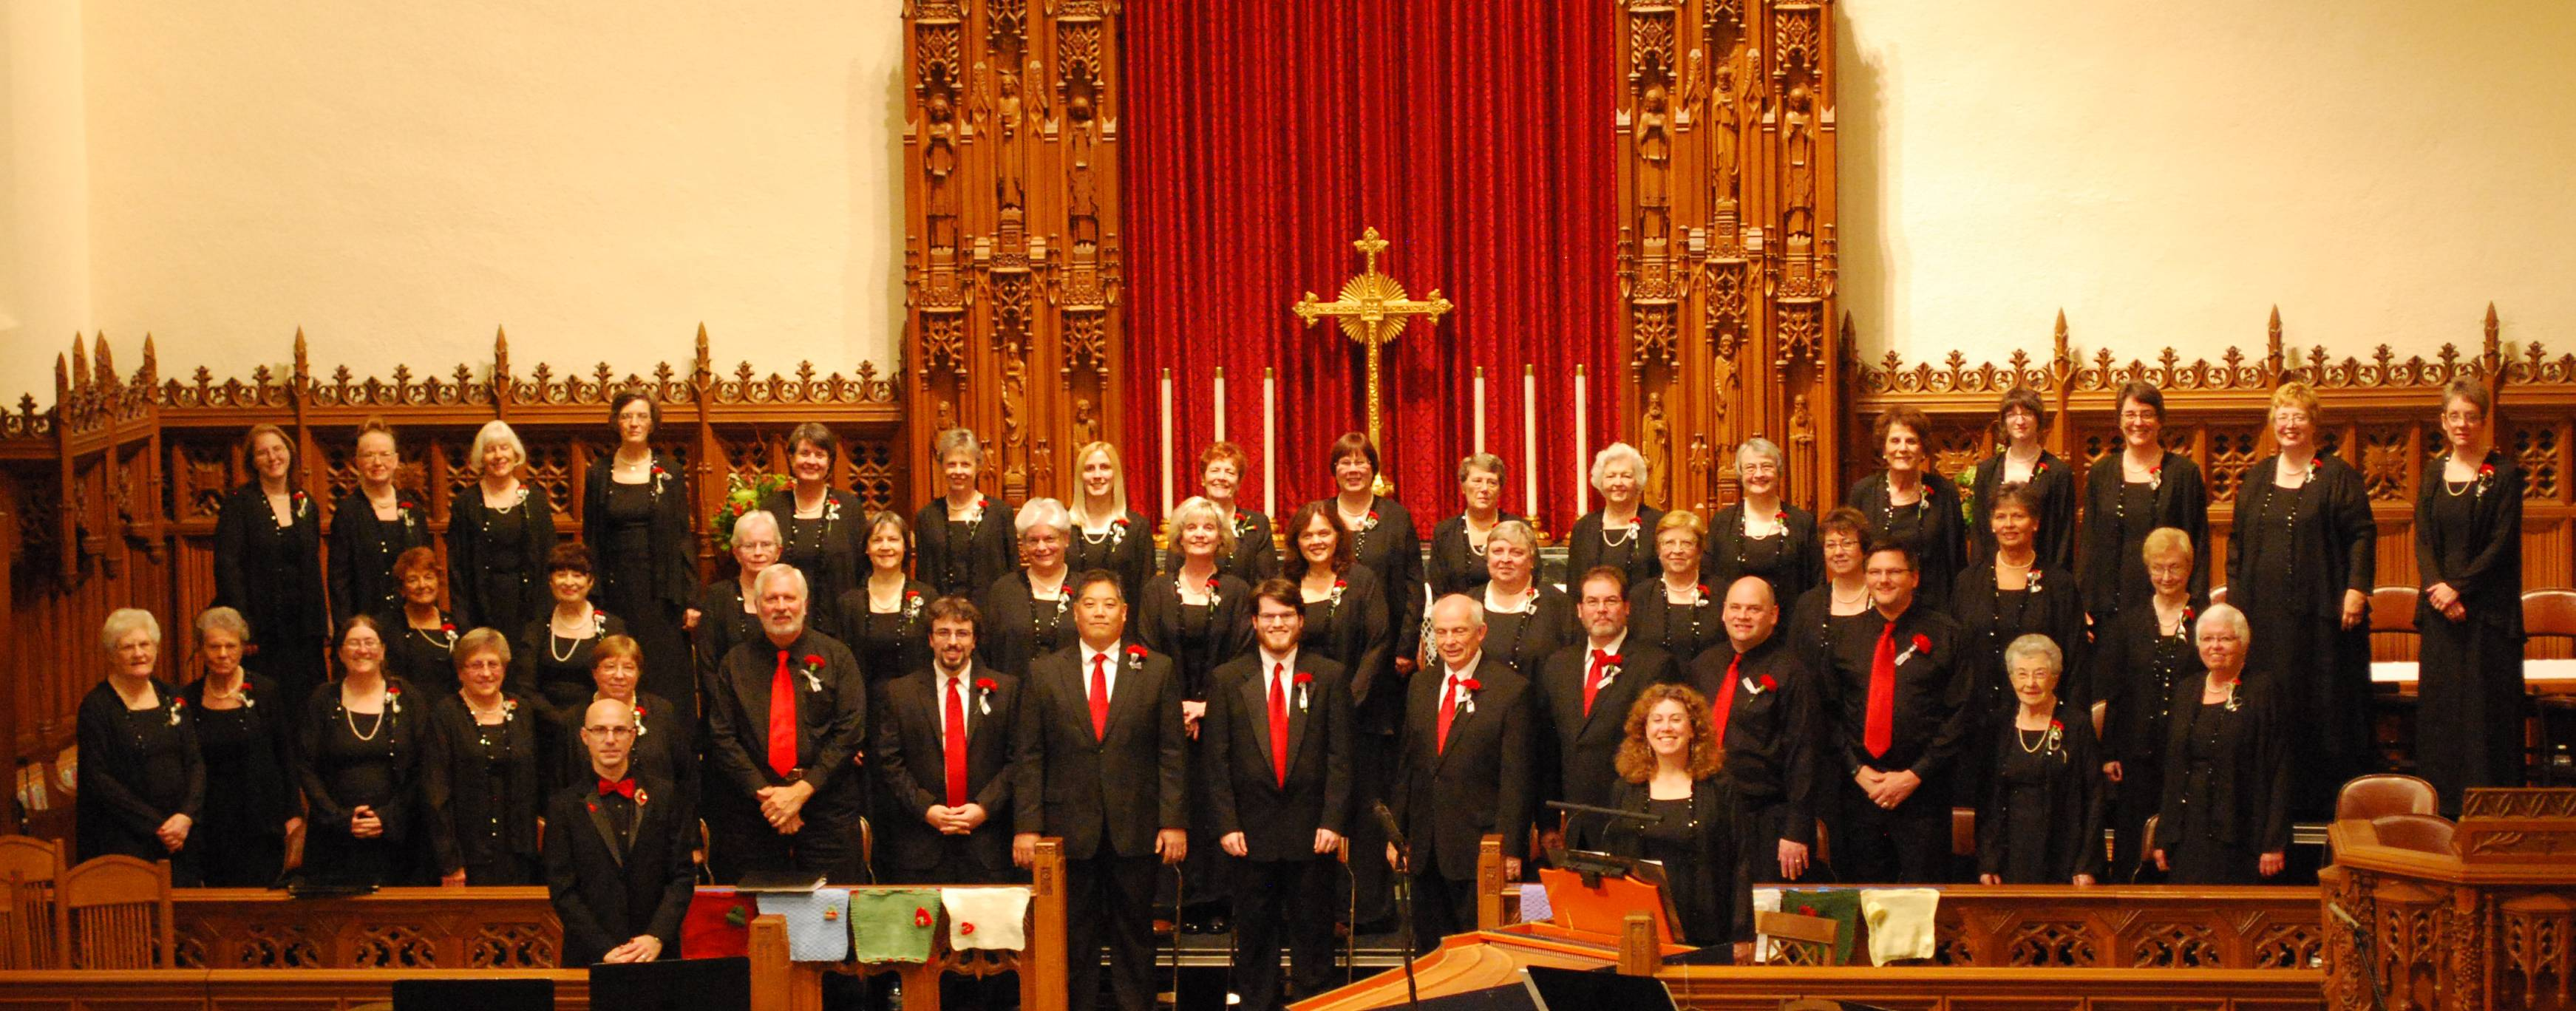 The Northwest Choral Society presented a 2012 holiday concert at Grace Lutheran Church in River Forest.